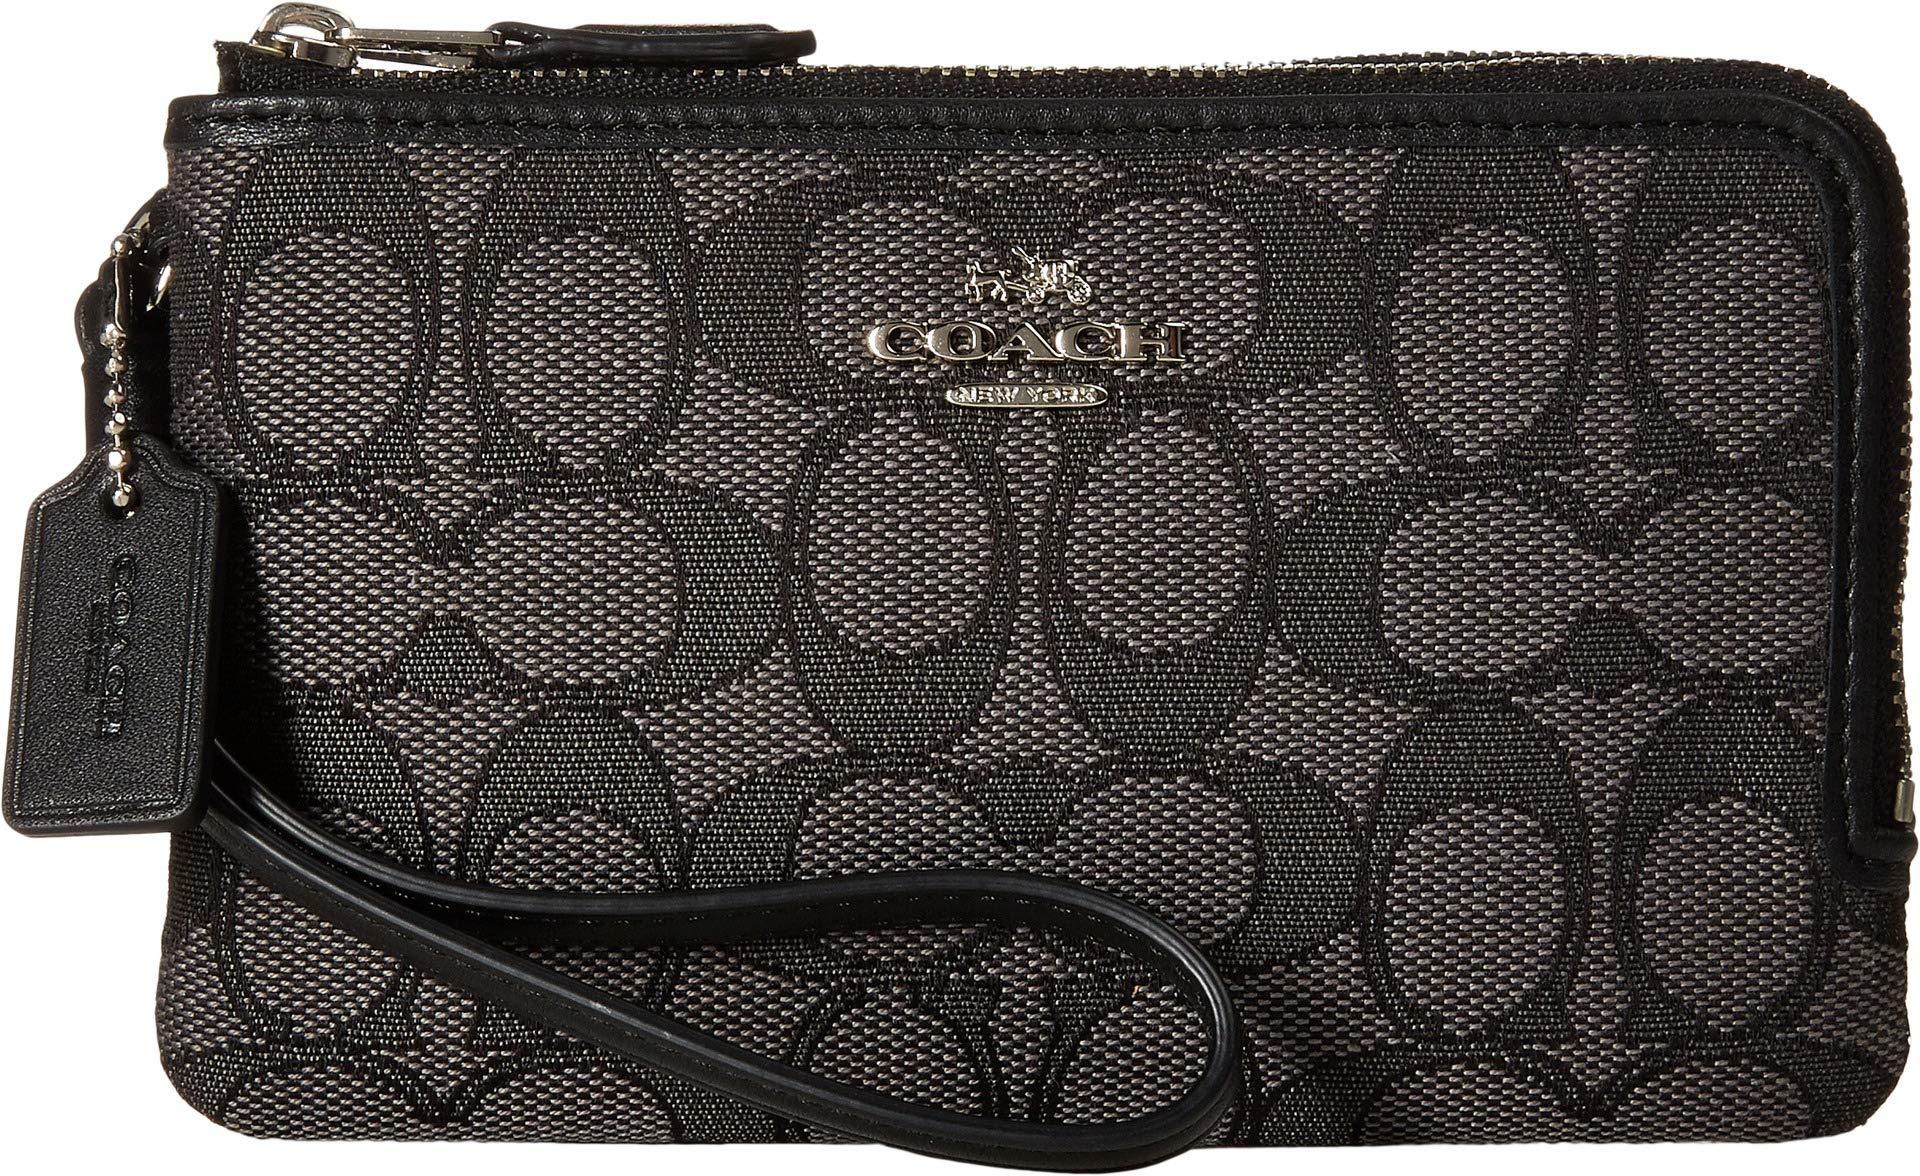 COACH Women's Signature Double Corner Zip Bag Silver/Black Smoke/Black Coin or Card Case